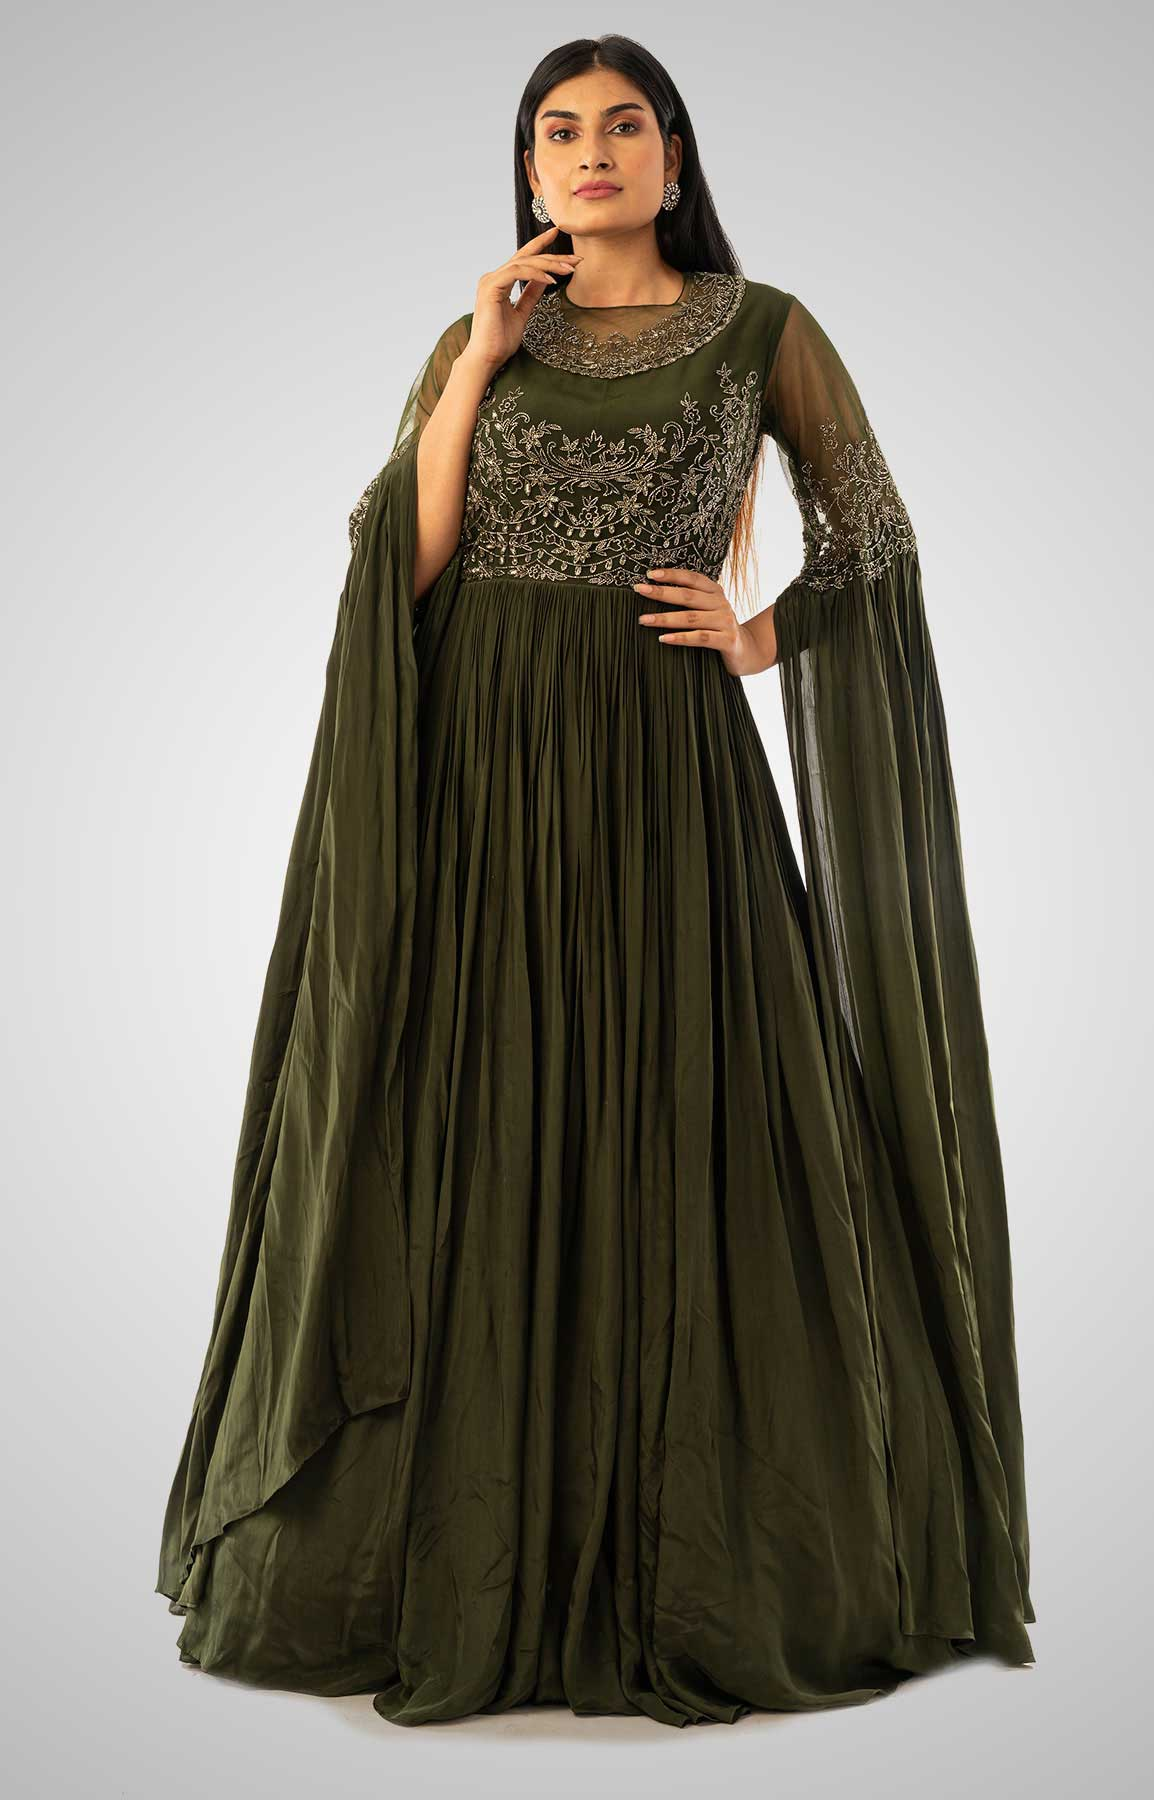 Olive Green Crepe Gown With Cape Style Sleeve And Embroidered Bodice – Viraaya By Ushnakmals